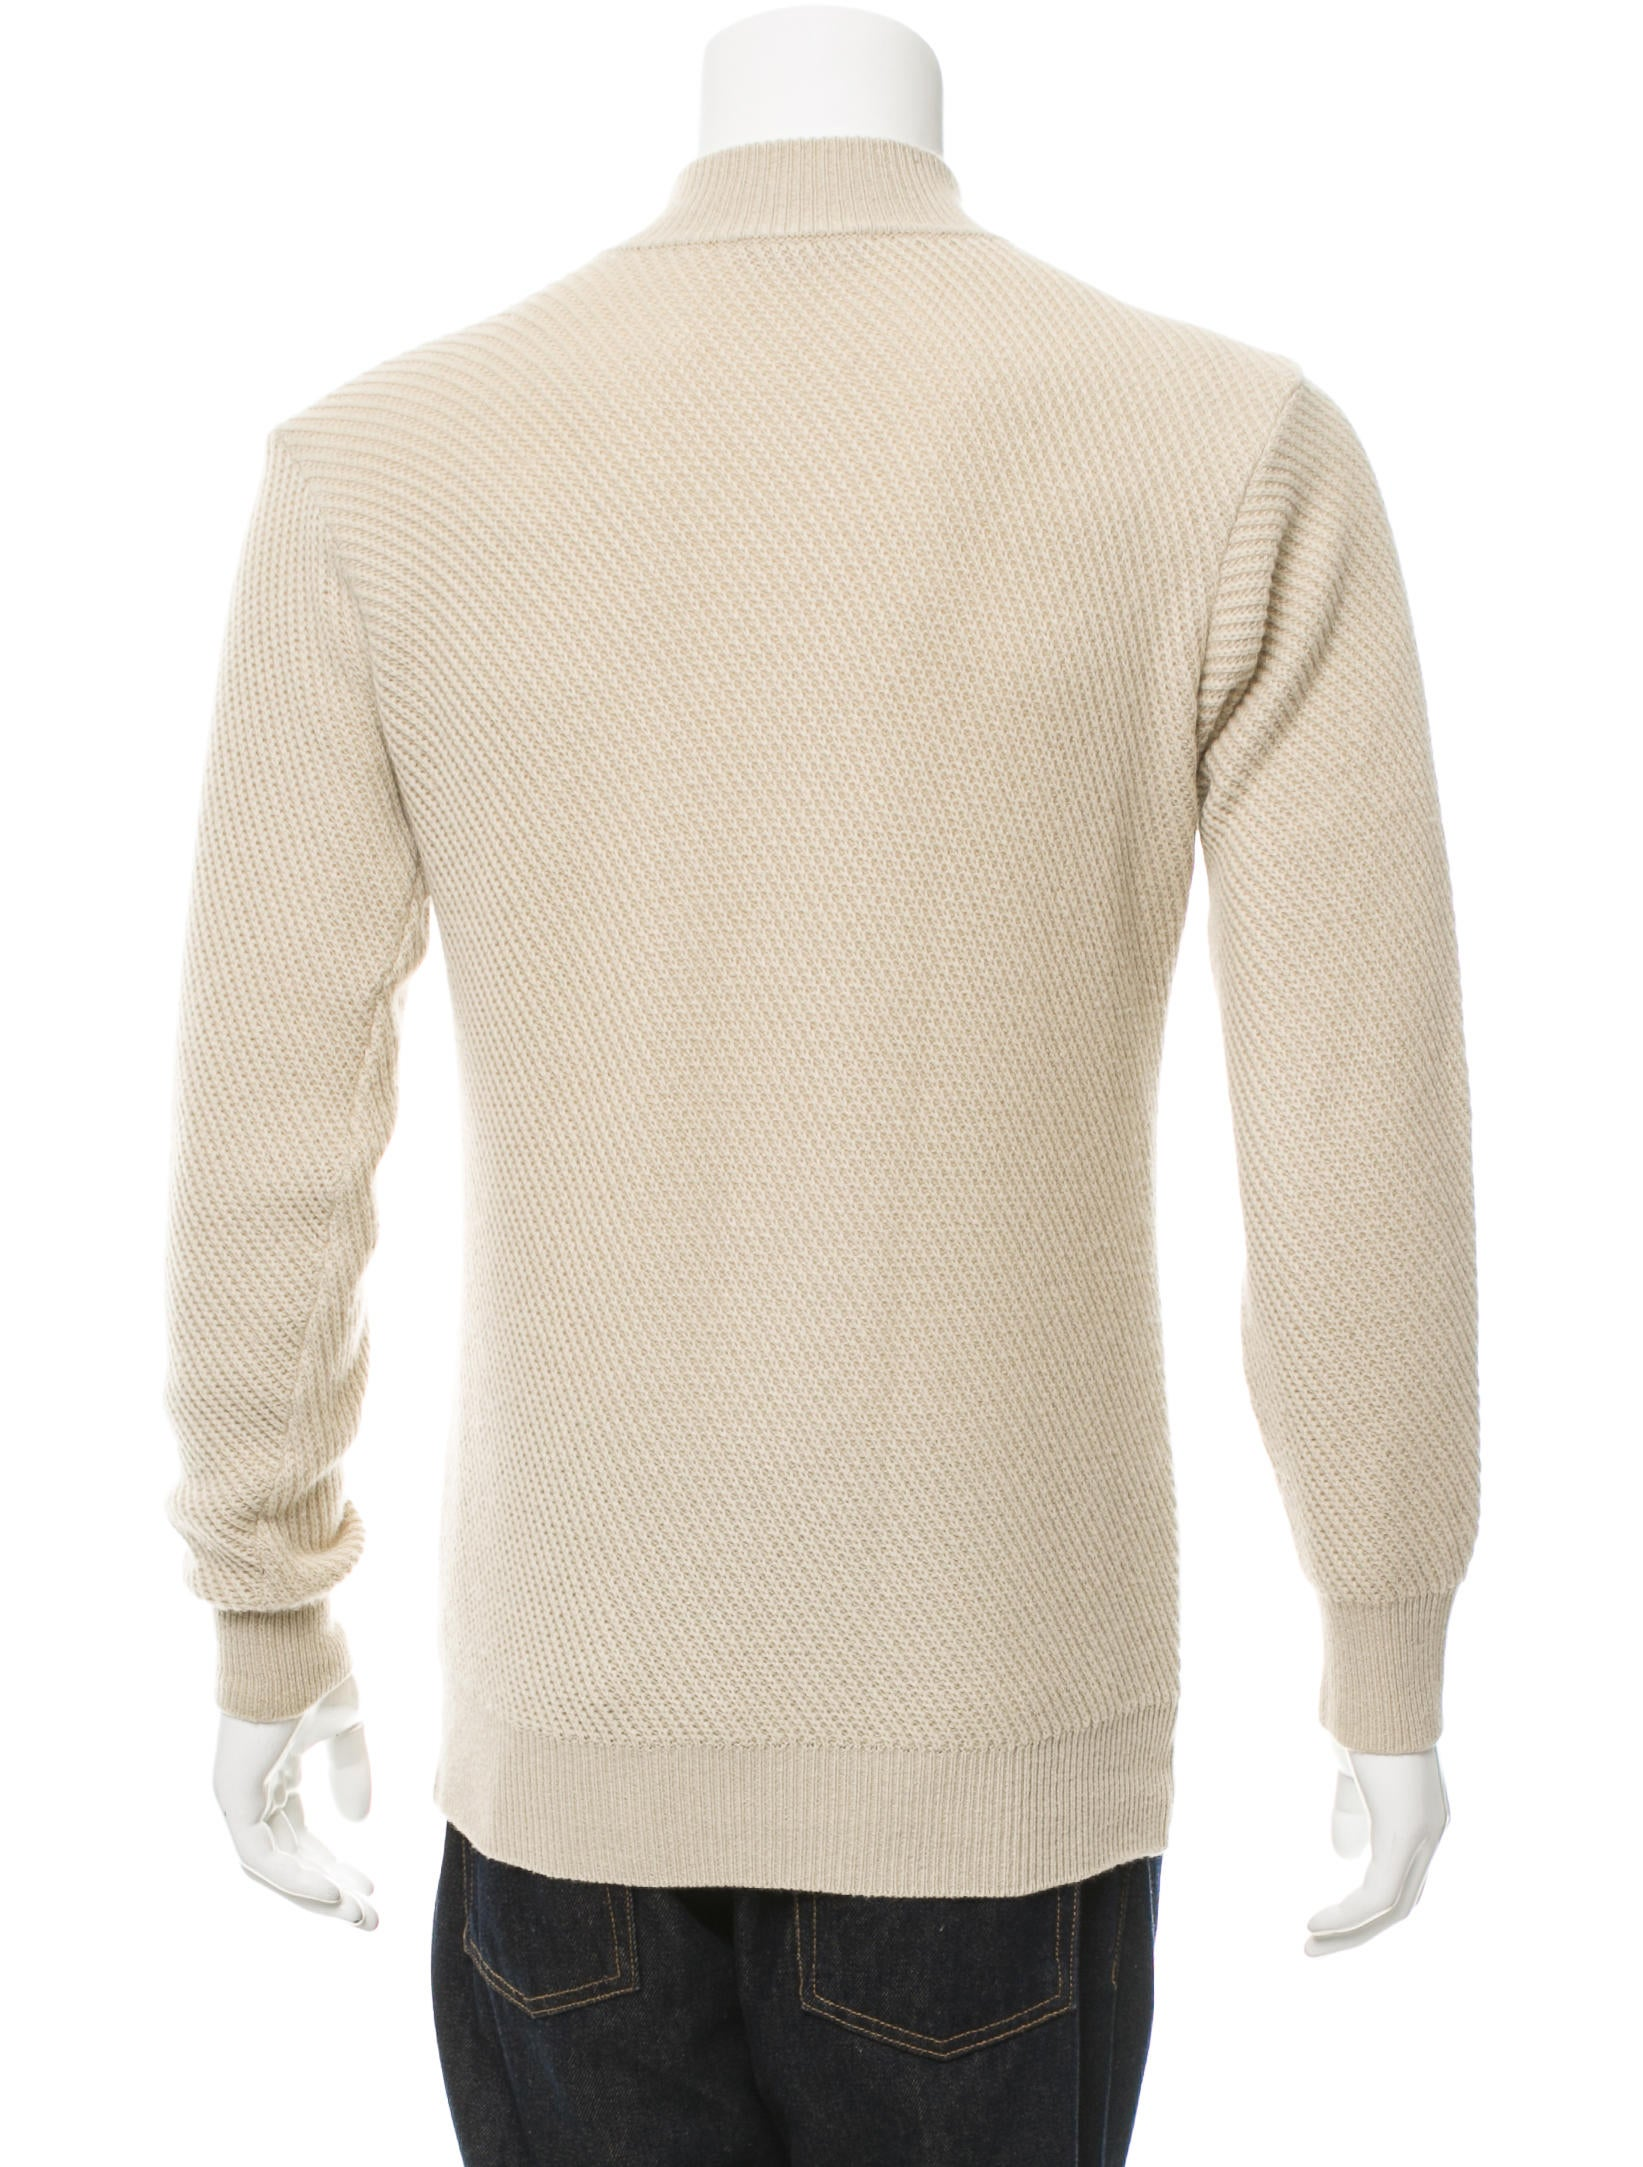 Loro Piana Rib Knit Half-Zip Sweater - Clothing - LOR34488 ...